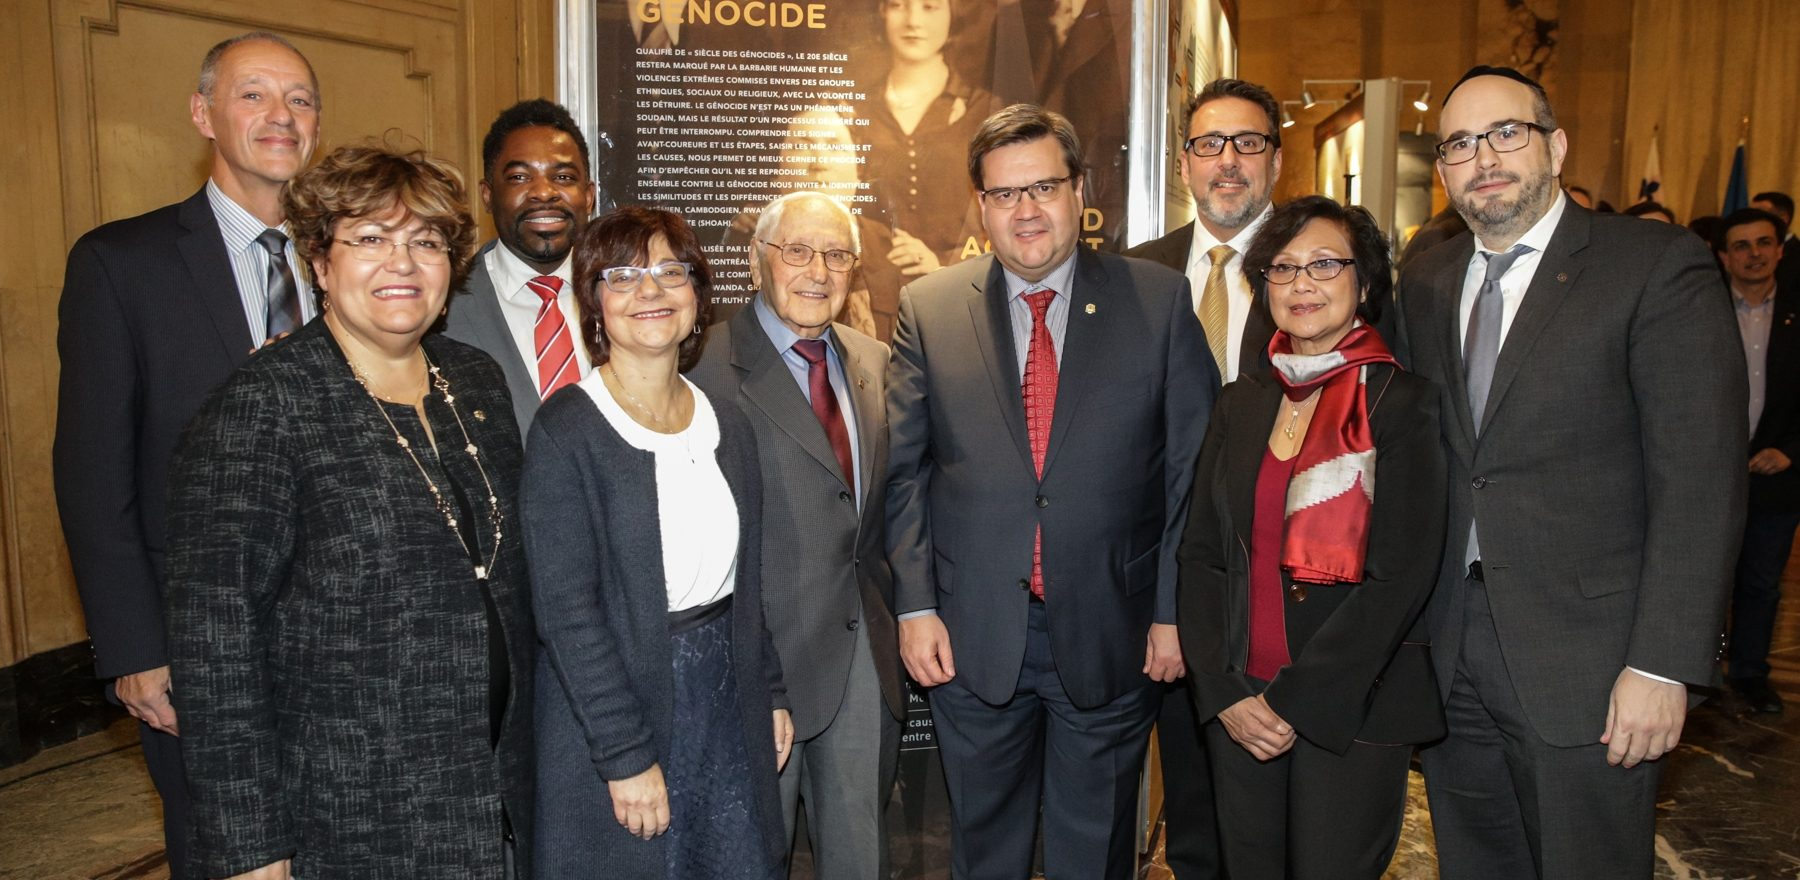 Opening of the Traveling Exhibition Ensemble Against the Genocide at the Montreal Holocaust Museum at the Montreal City Hall.